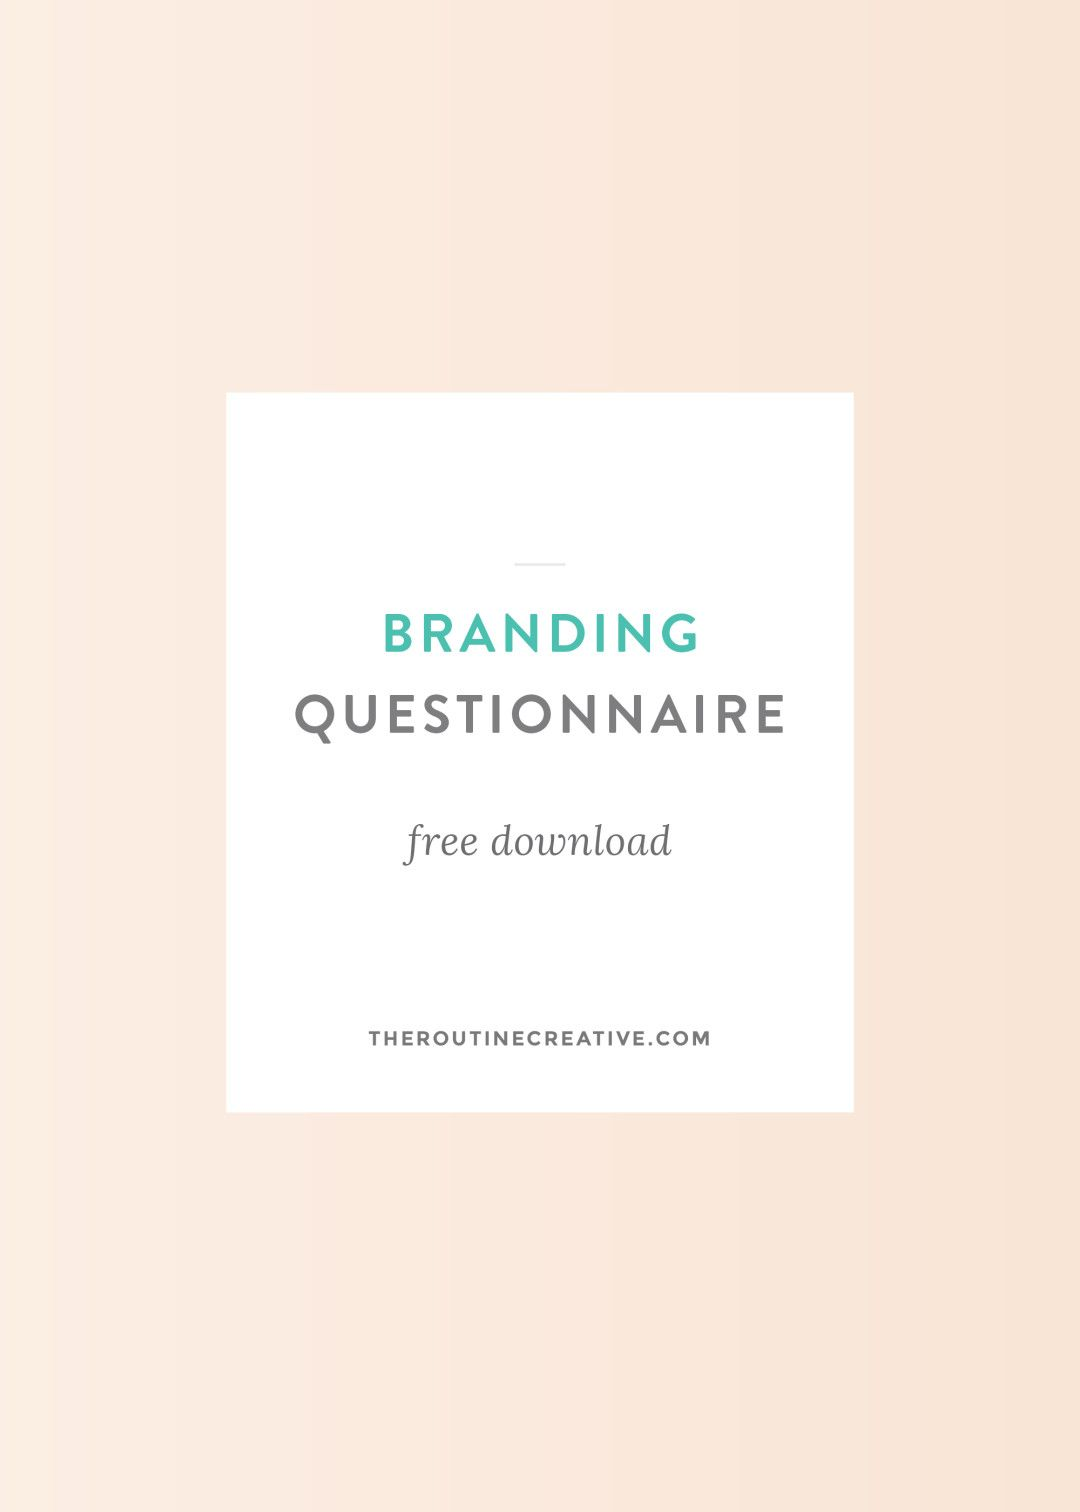 Free branding questionnaire resource for clients and other graphic business free branding questionnaire malvernweather Gallery